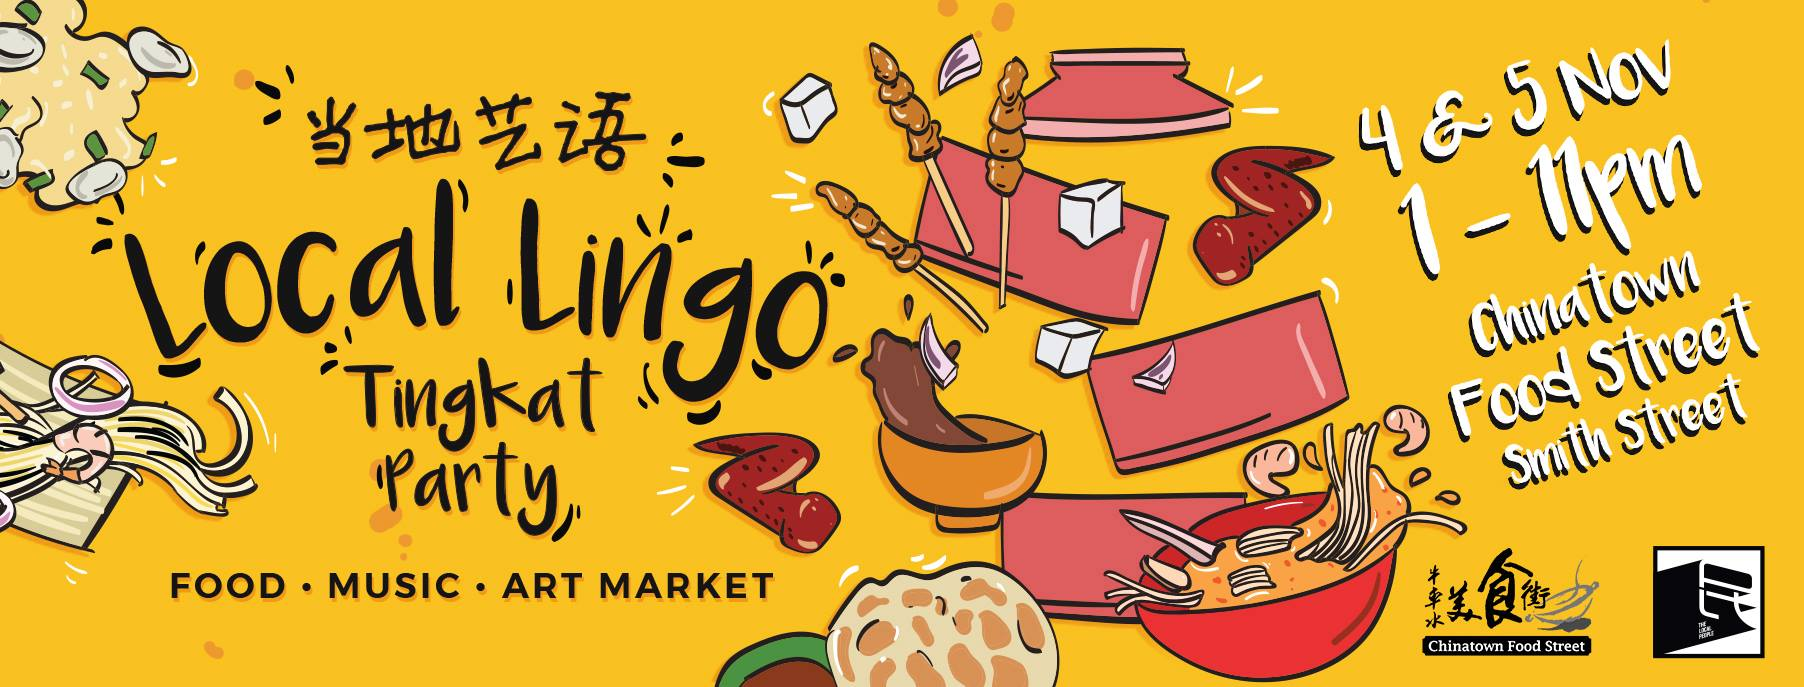 Local Lingo/Tingkat Party - Chinatown Food Street and TLP